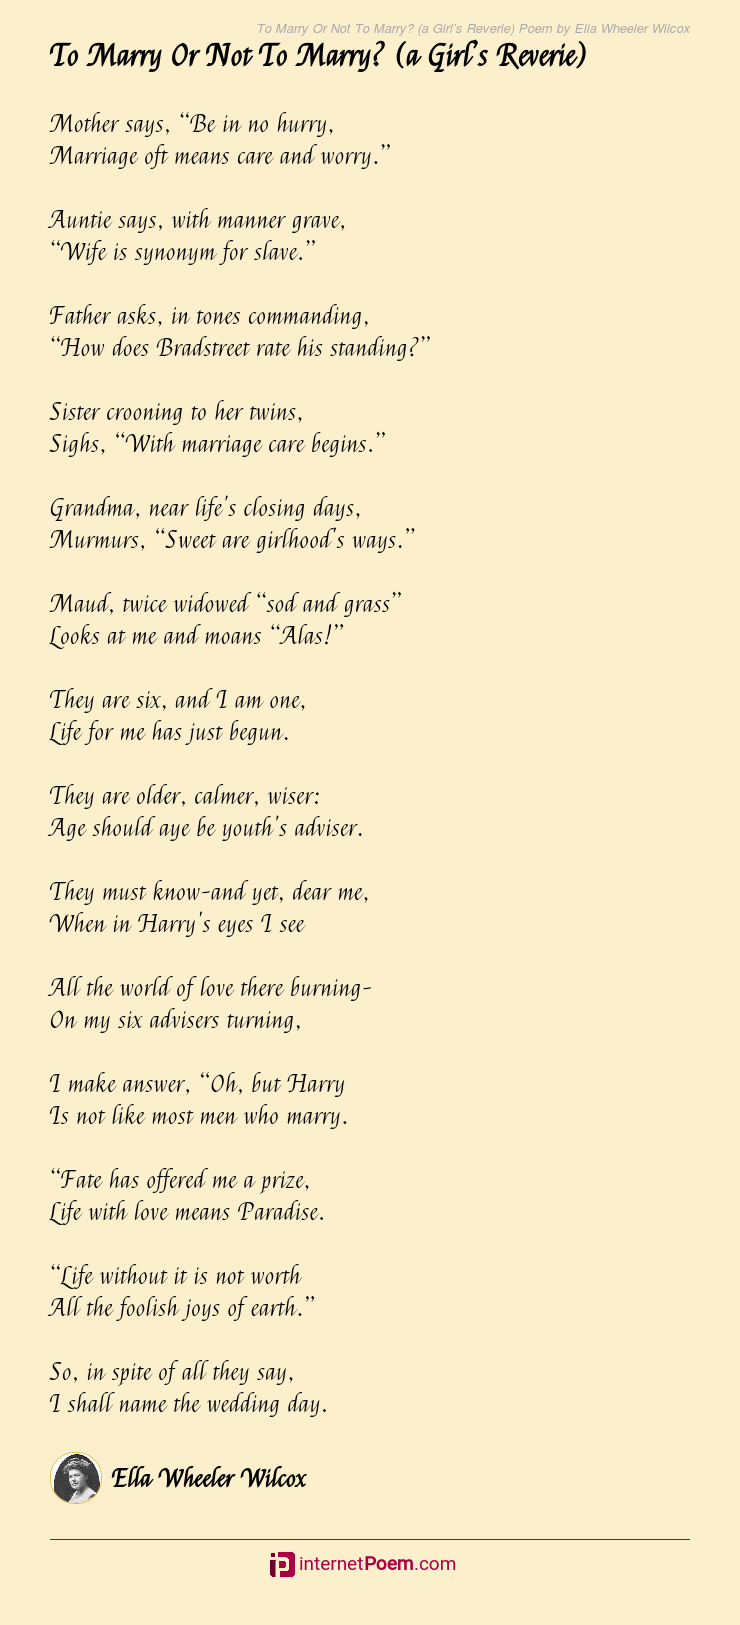 To Marry Or Not To Marry A Girl S Reverie Poem By Ella Wheeler Wilcox